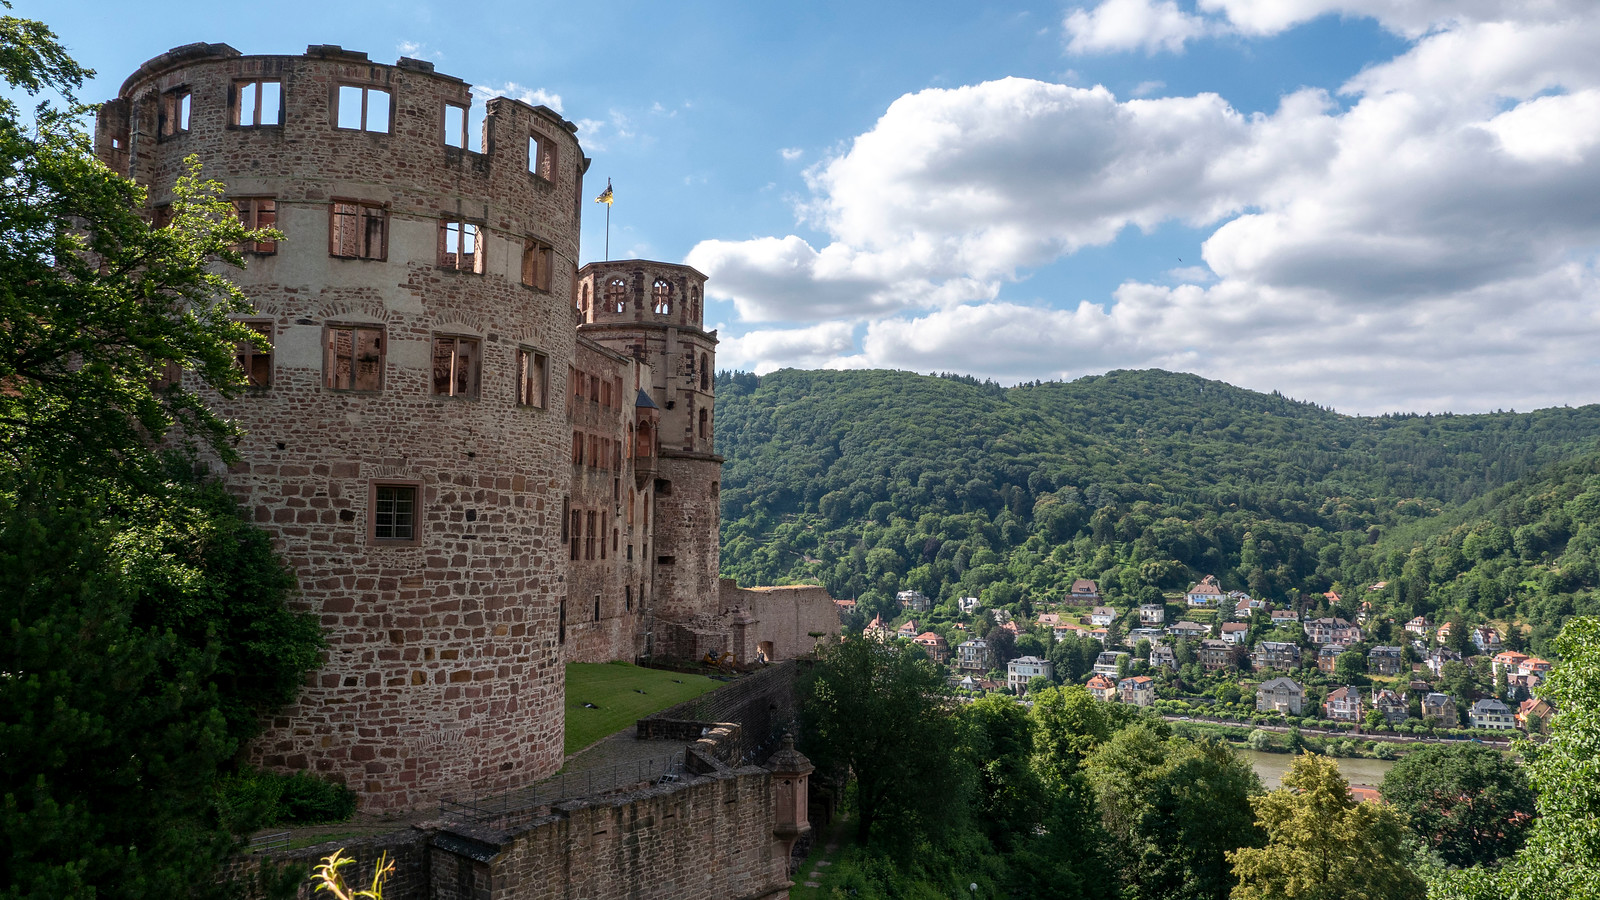 Spectacular Things to Do in Heidelberg Germany - Heidelberg Castle ruins and views